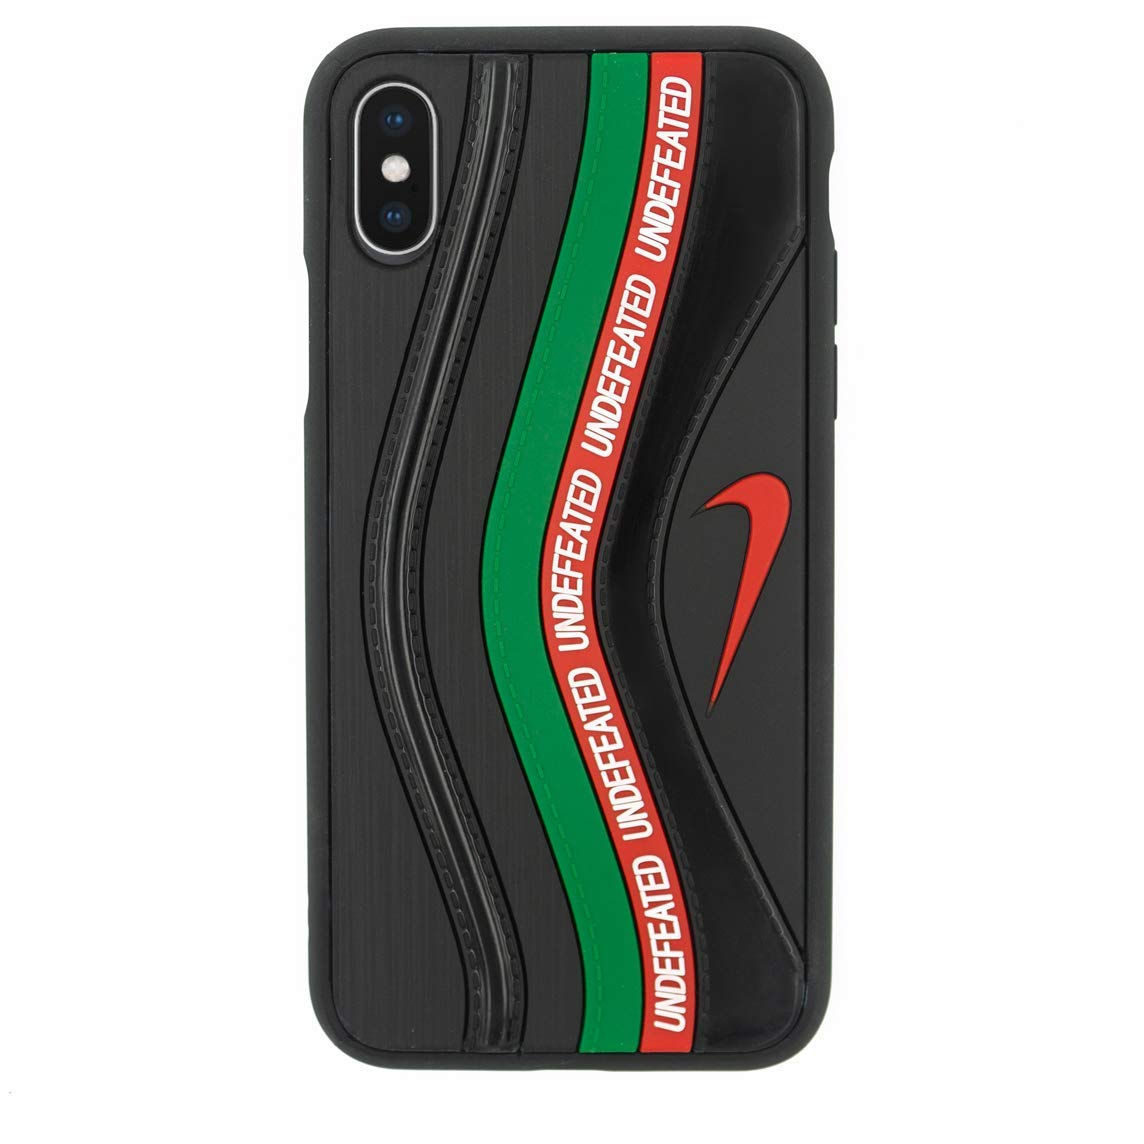 Air Max 97 Shoe Design iPhone 3D Sean Wotherspoon WUndefeated Case Official Print Textured Shock Absorbing Protective Sneaker Soft Fashion Rubber